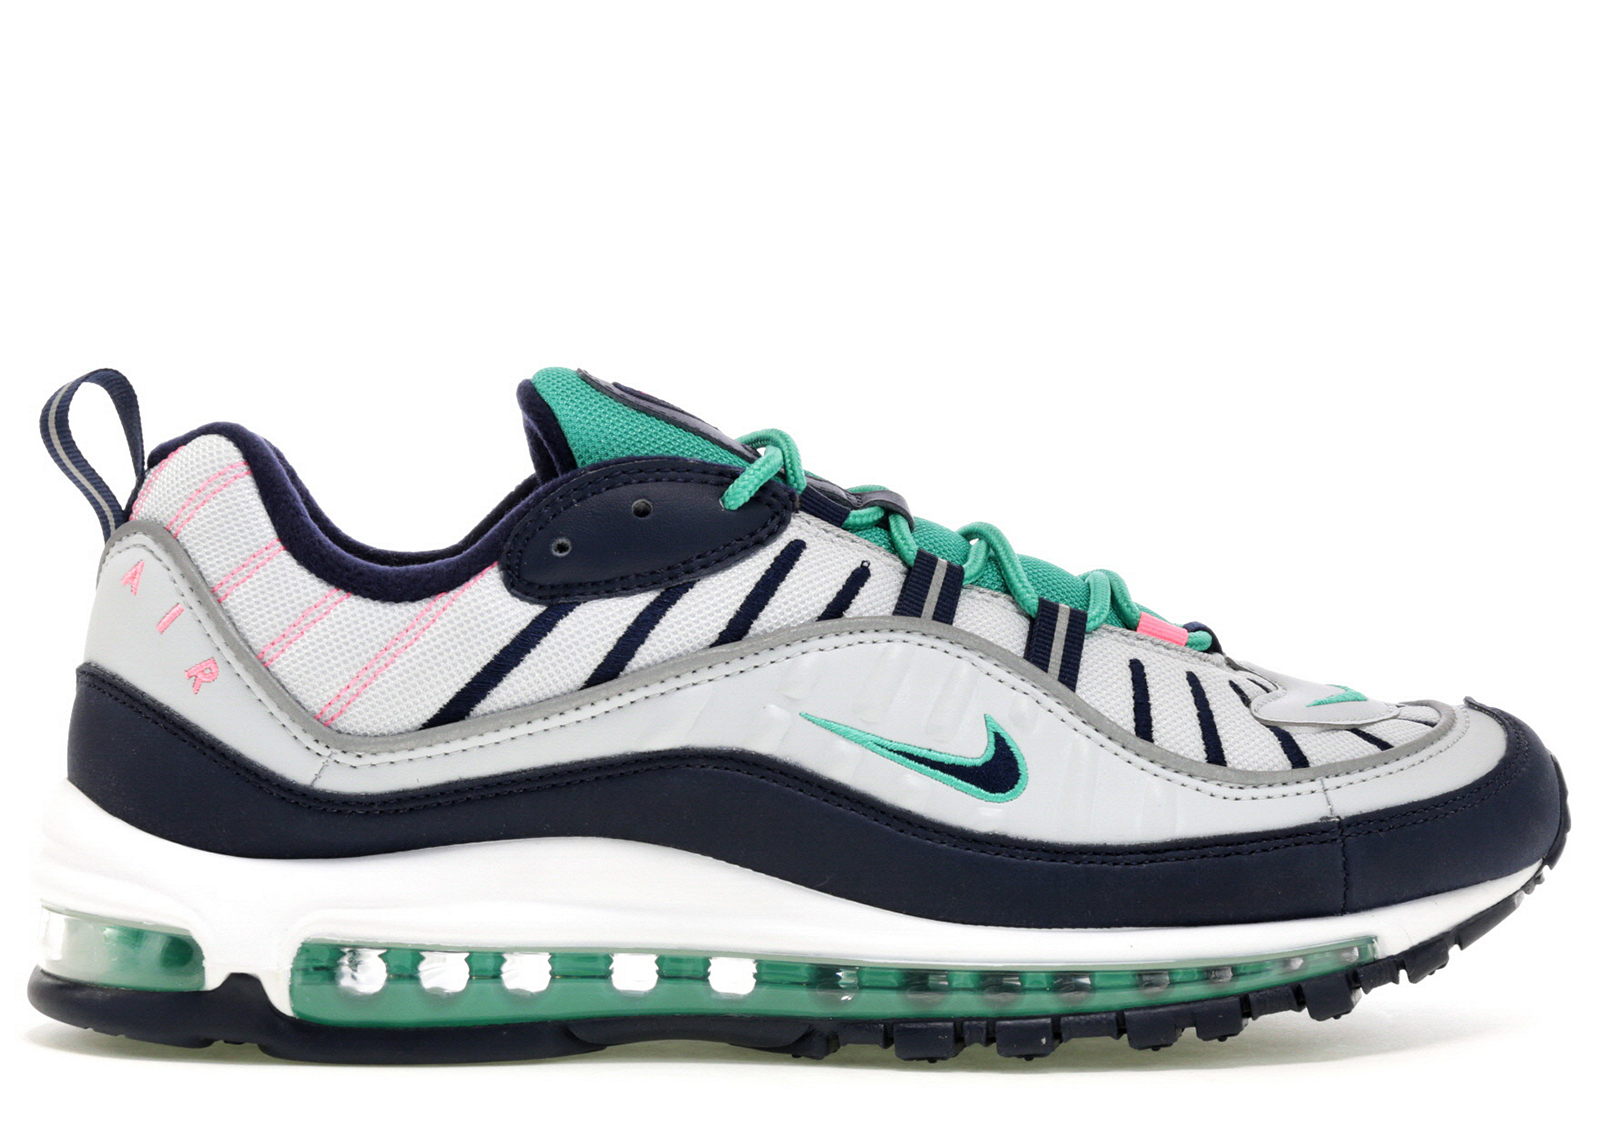 a55c3e5125 switzerland nike air max 98 green germany e740f 74c83